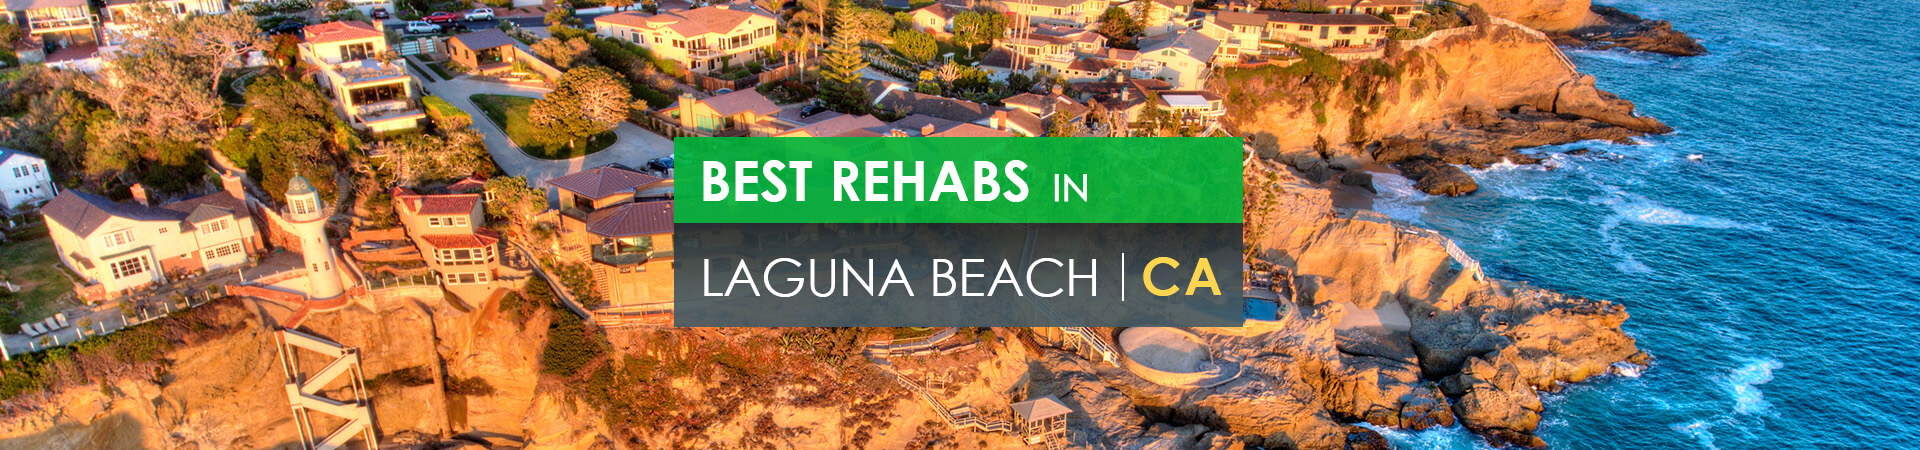 Best rehabs in Laguna Beach, CA